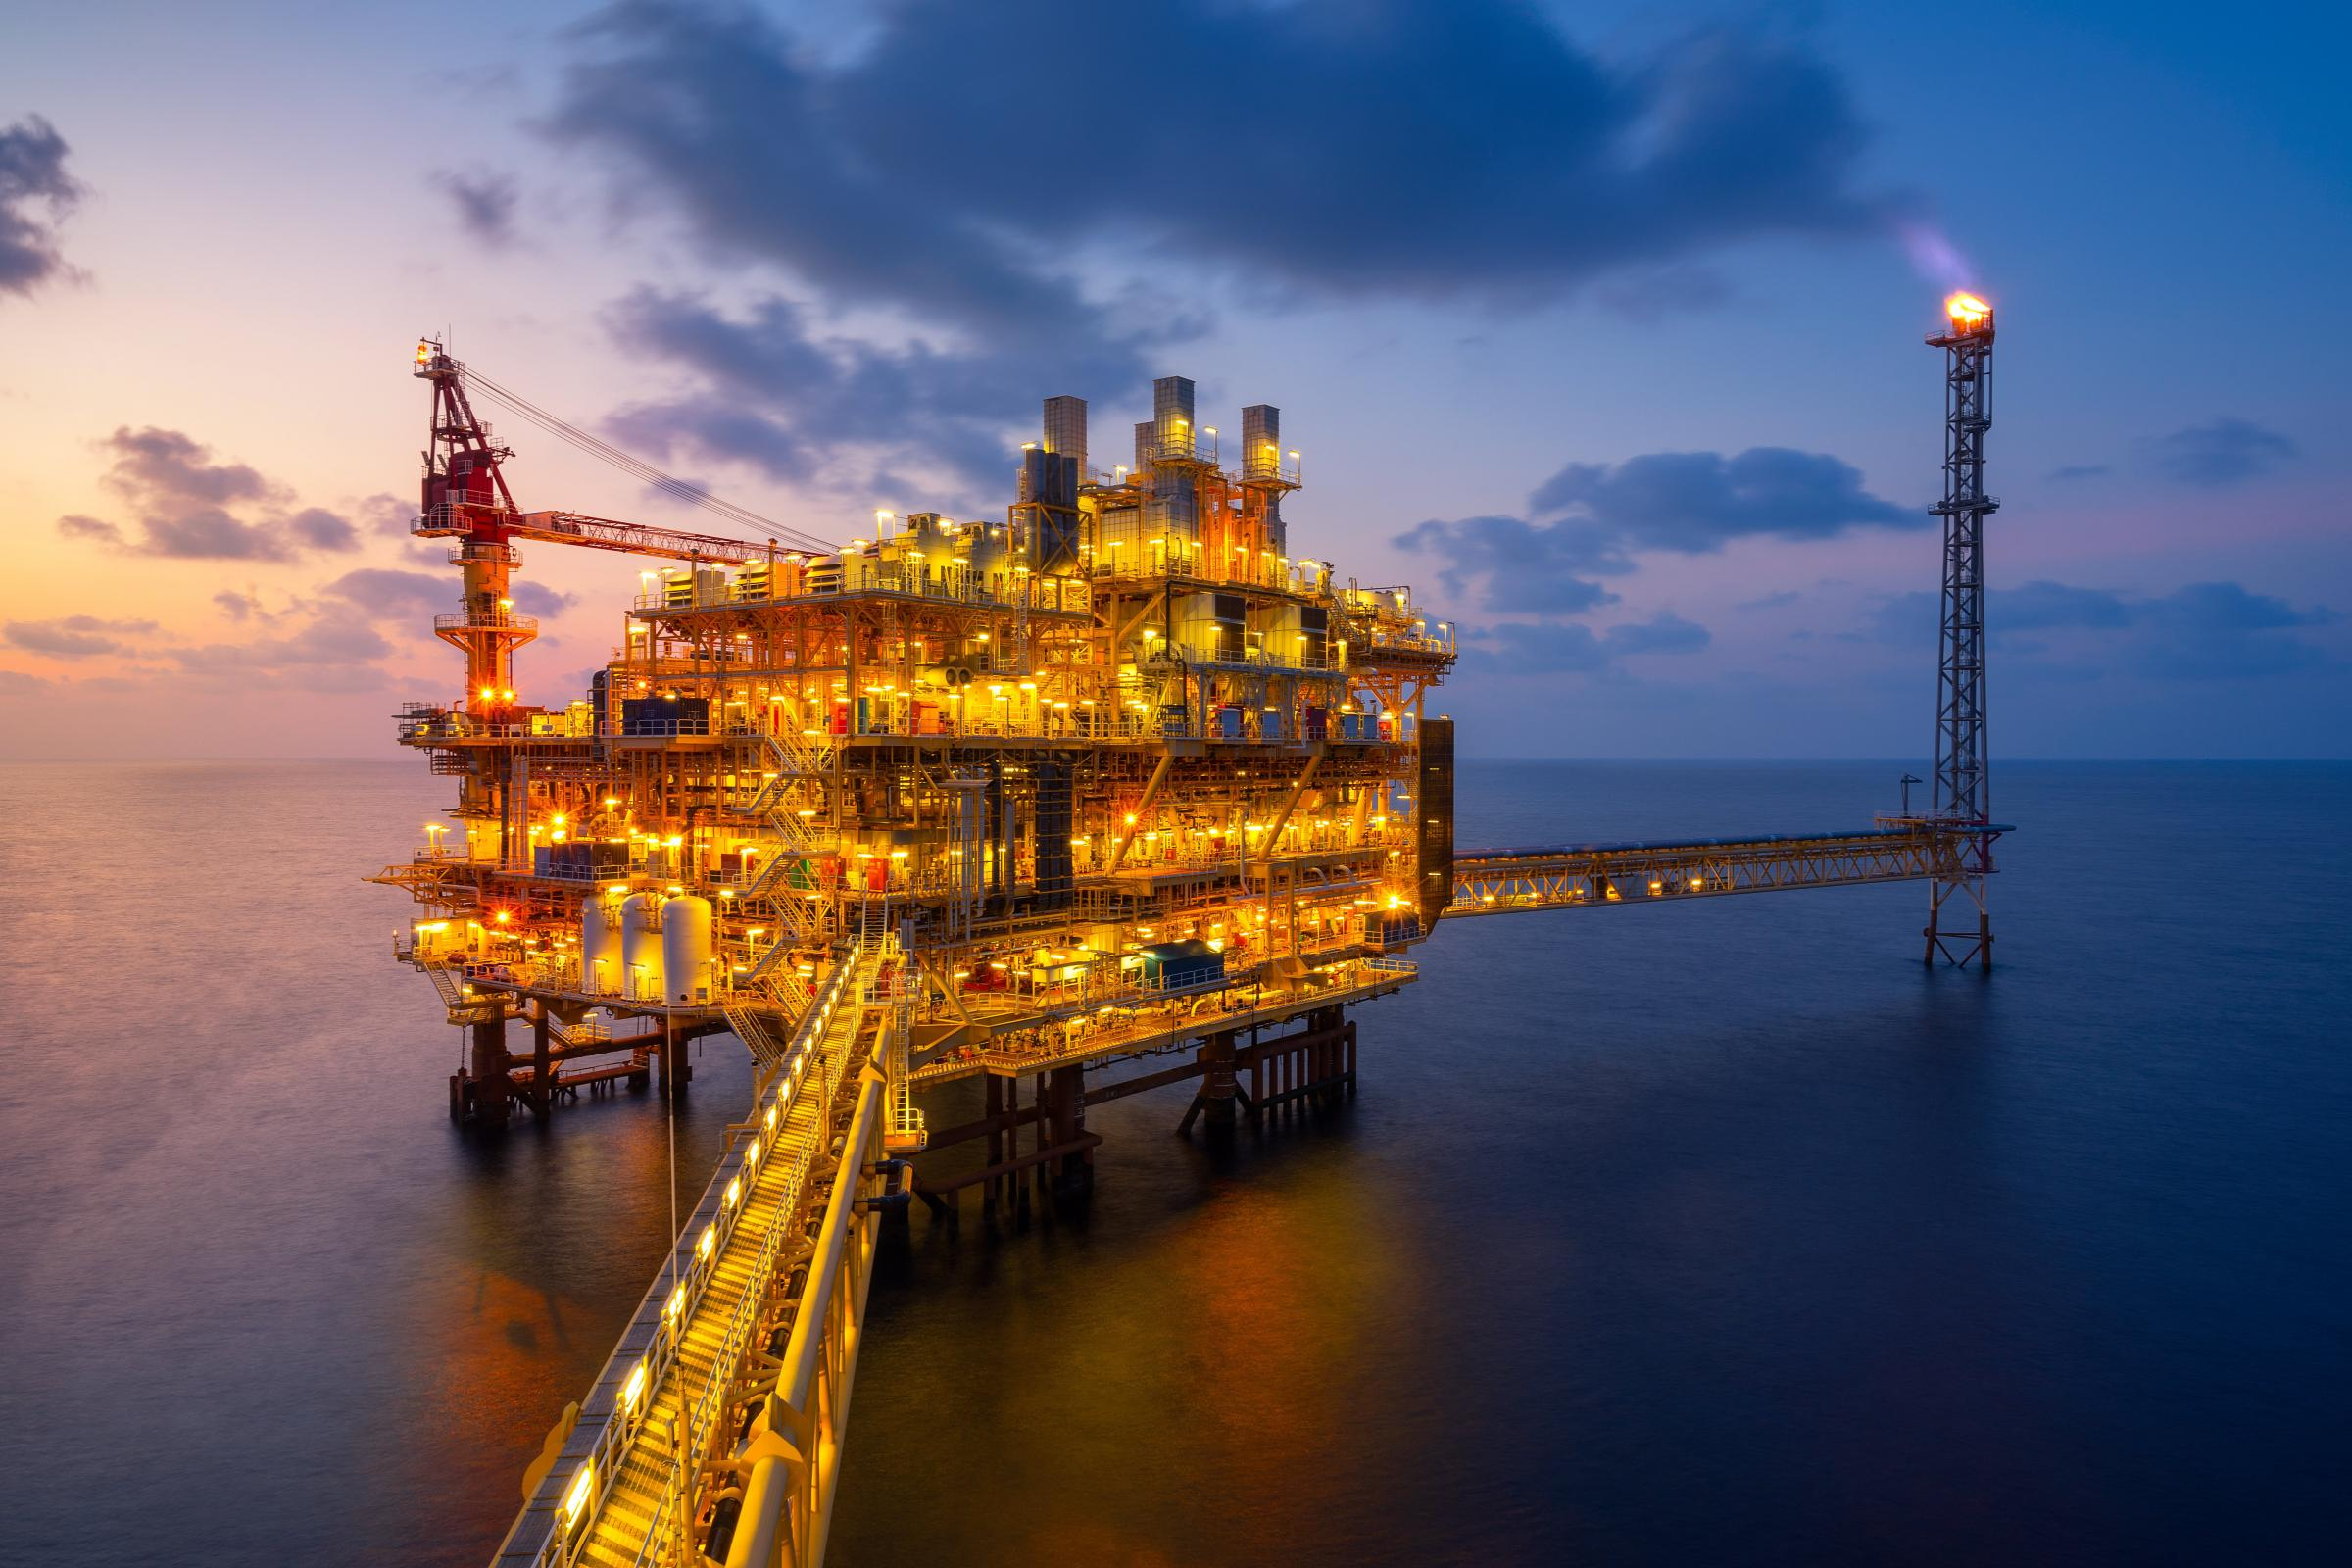 Ex-Scotland Office chief statistician says Scots should be paid back for oil revenues